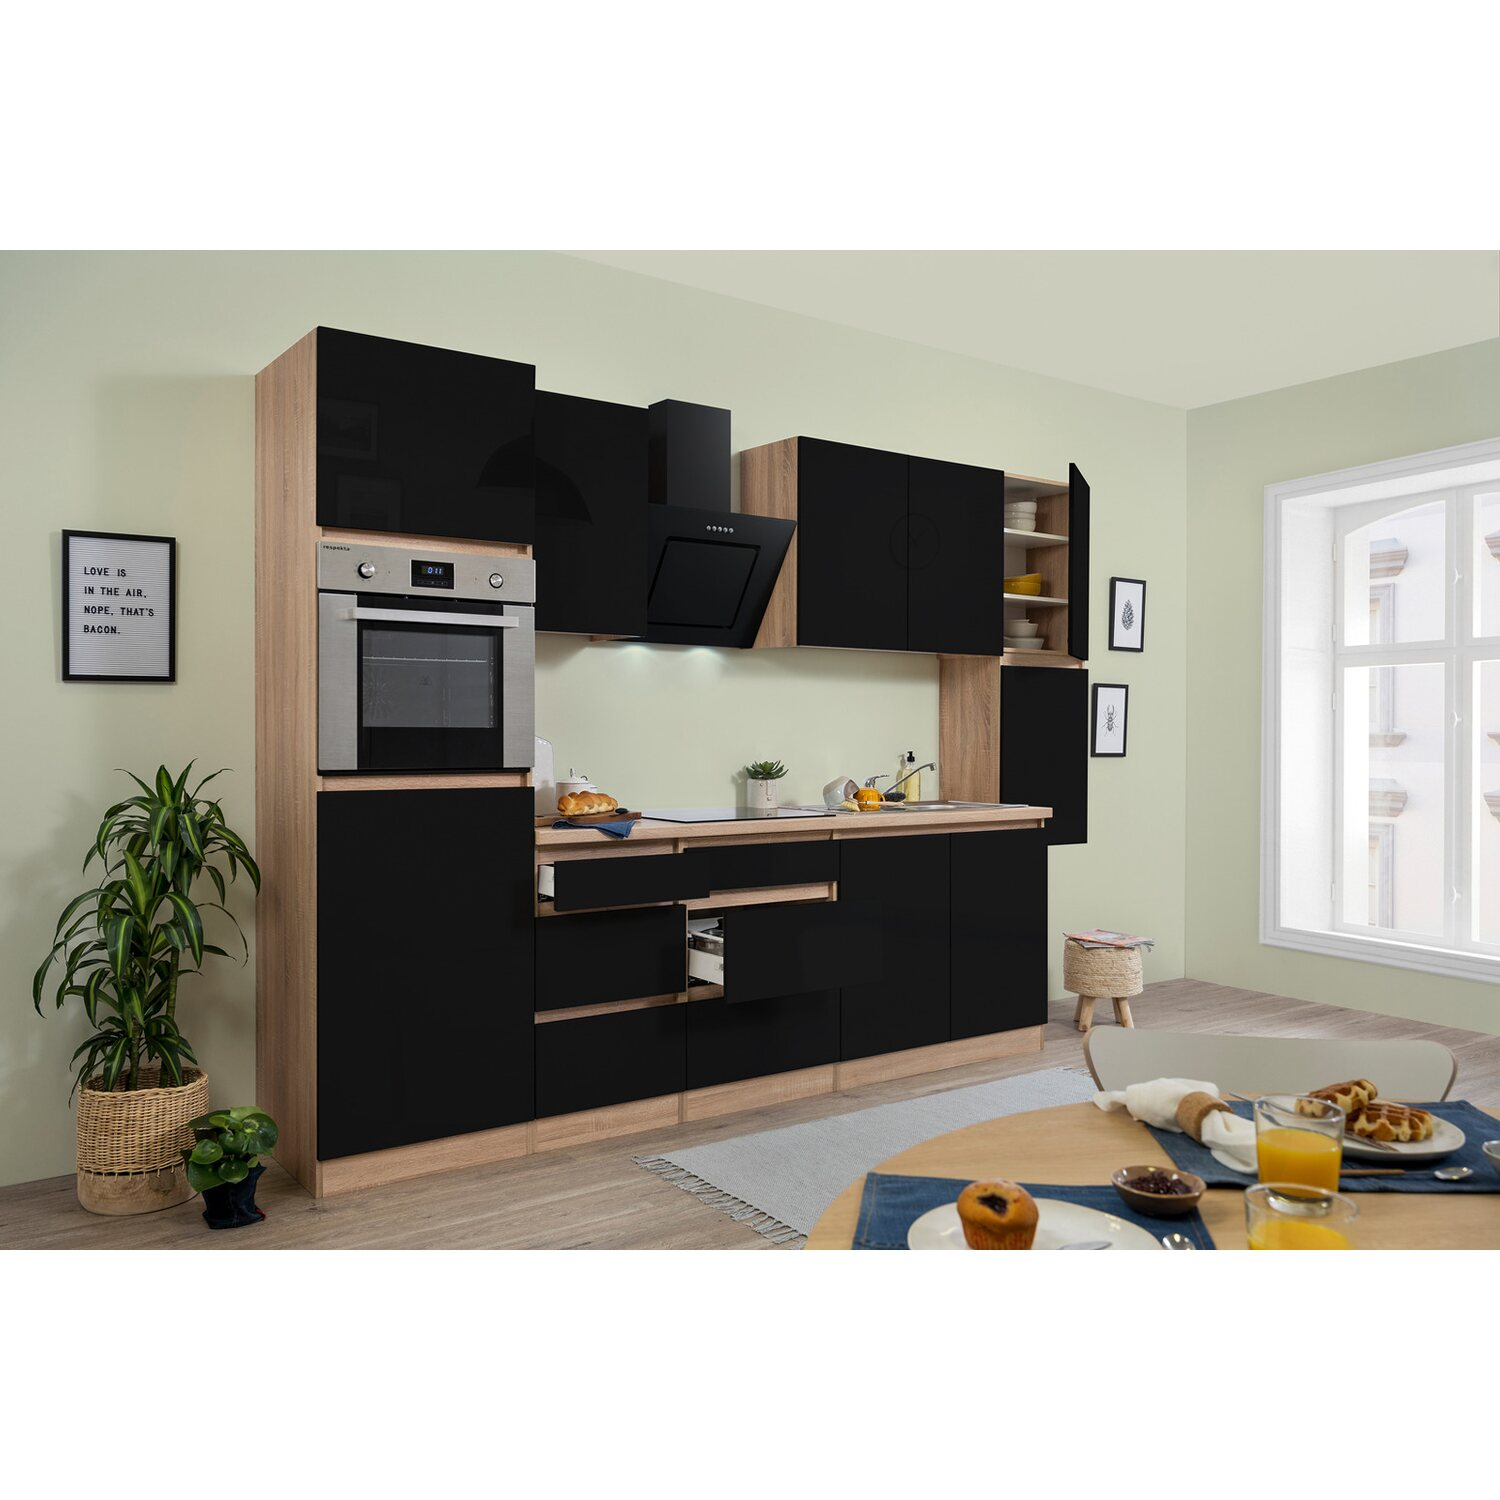 respekta k chenzeile glrp320hess grifflos 320 cm schwarz hochglanz sonoma eiche kaufen bei obi. Black Bedroom Furniture Sets. Home Design Ideas